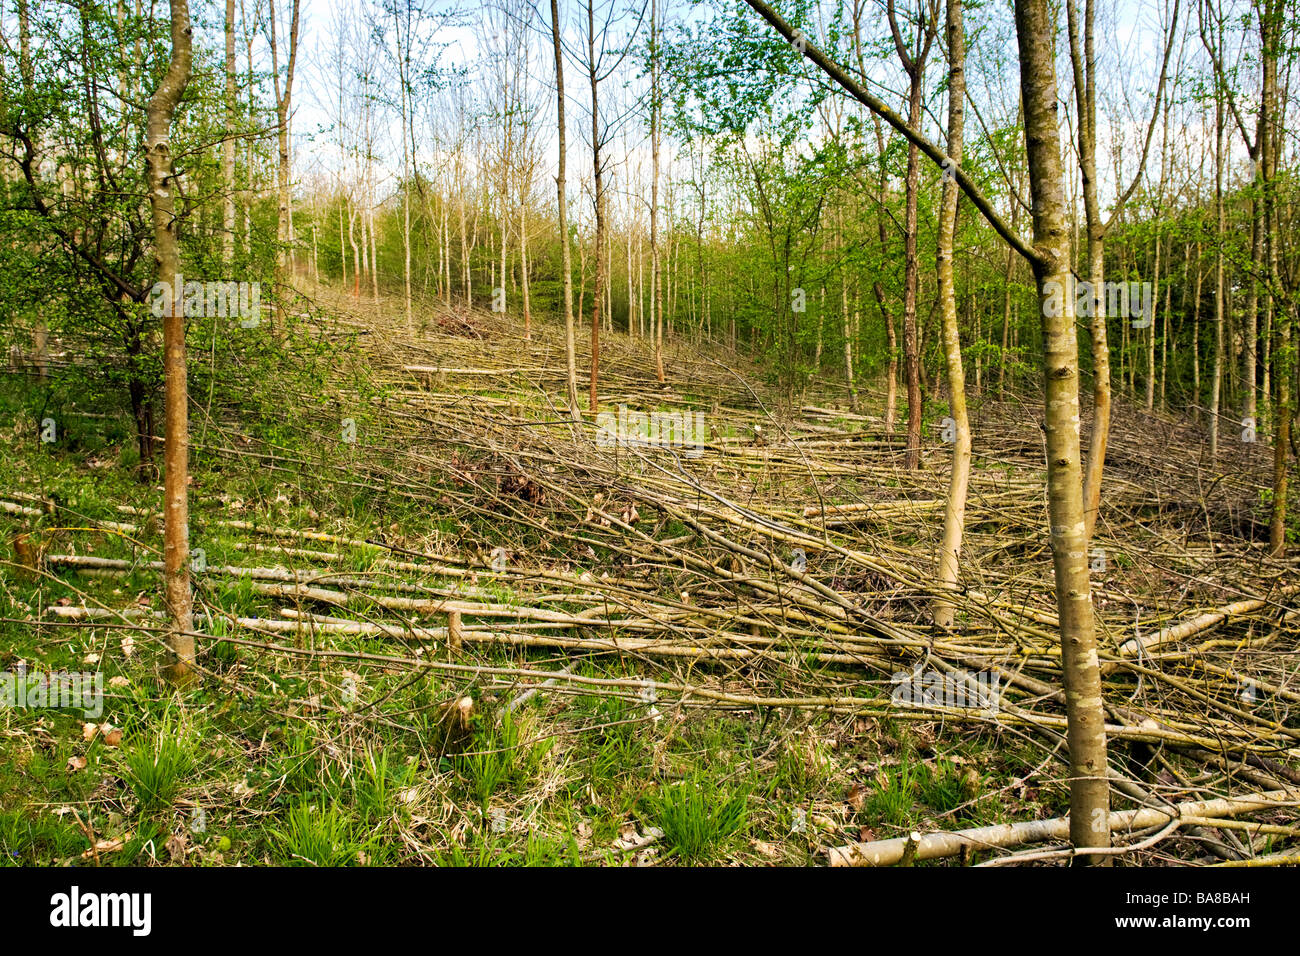 young trees cut down under tree management in overscourt wood area